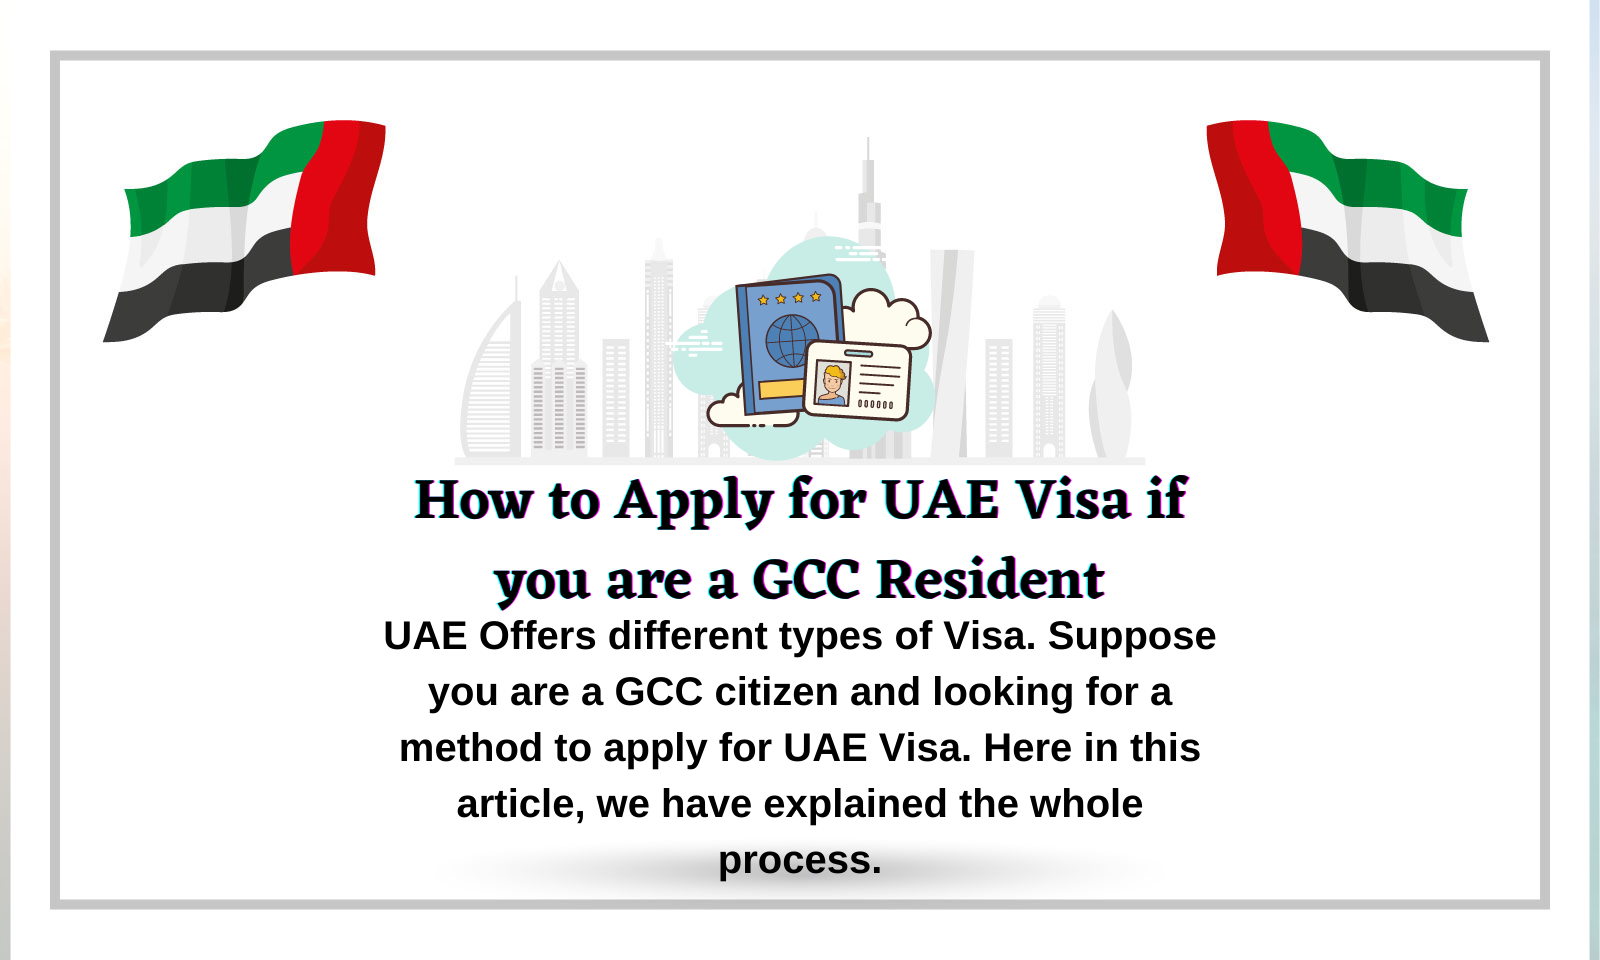 How to Apply for UAE Visa if you are a GCC Resident.